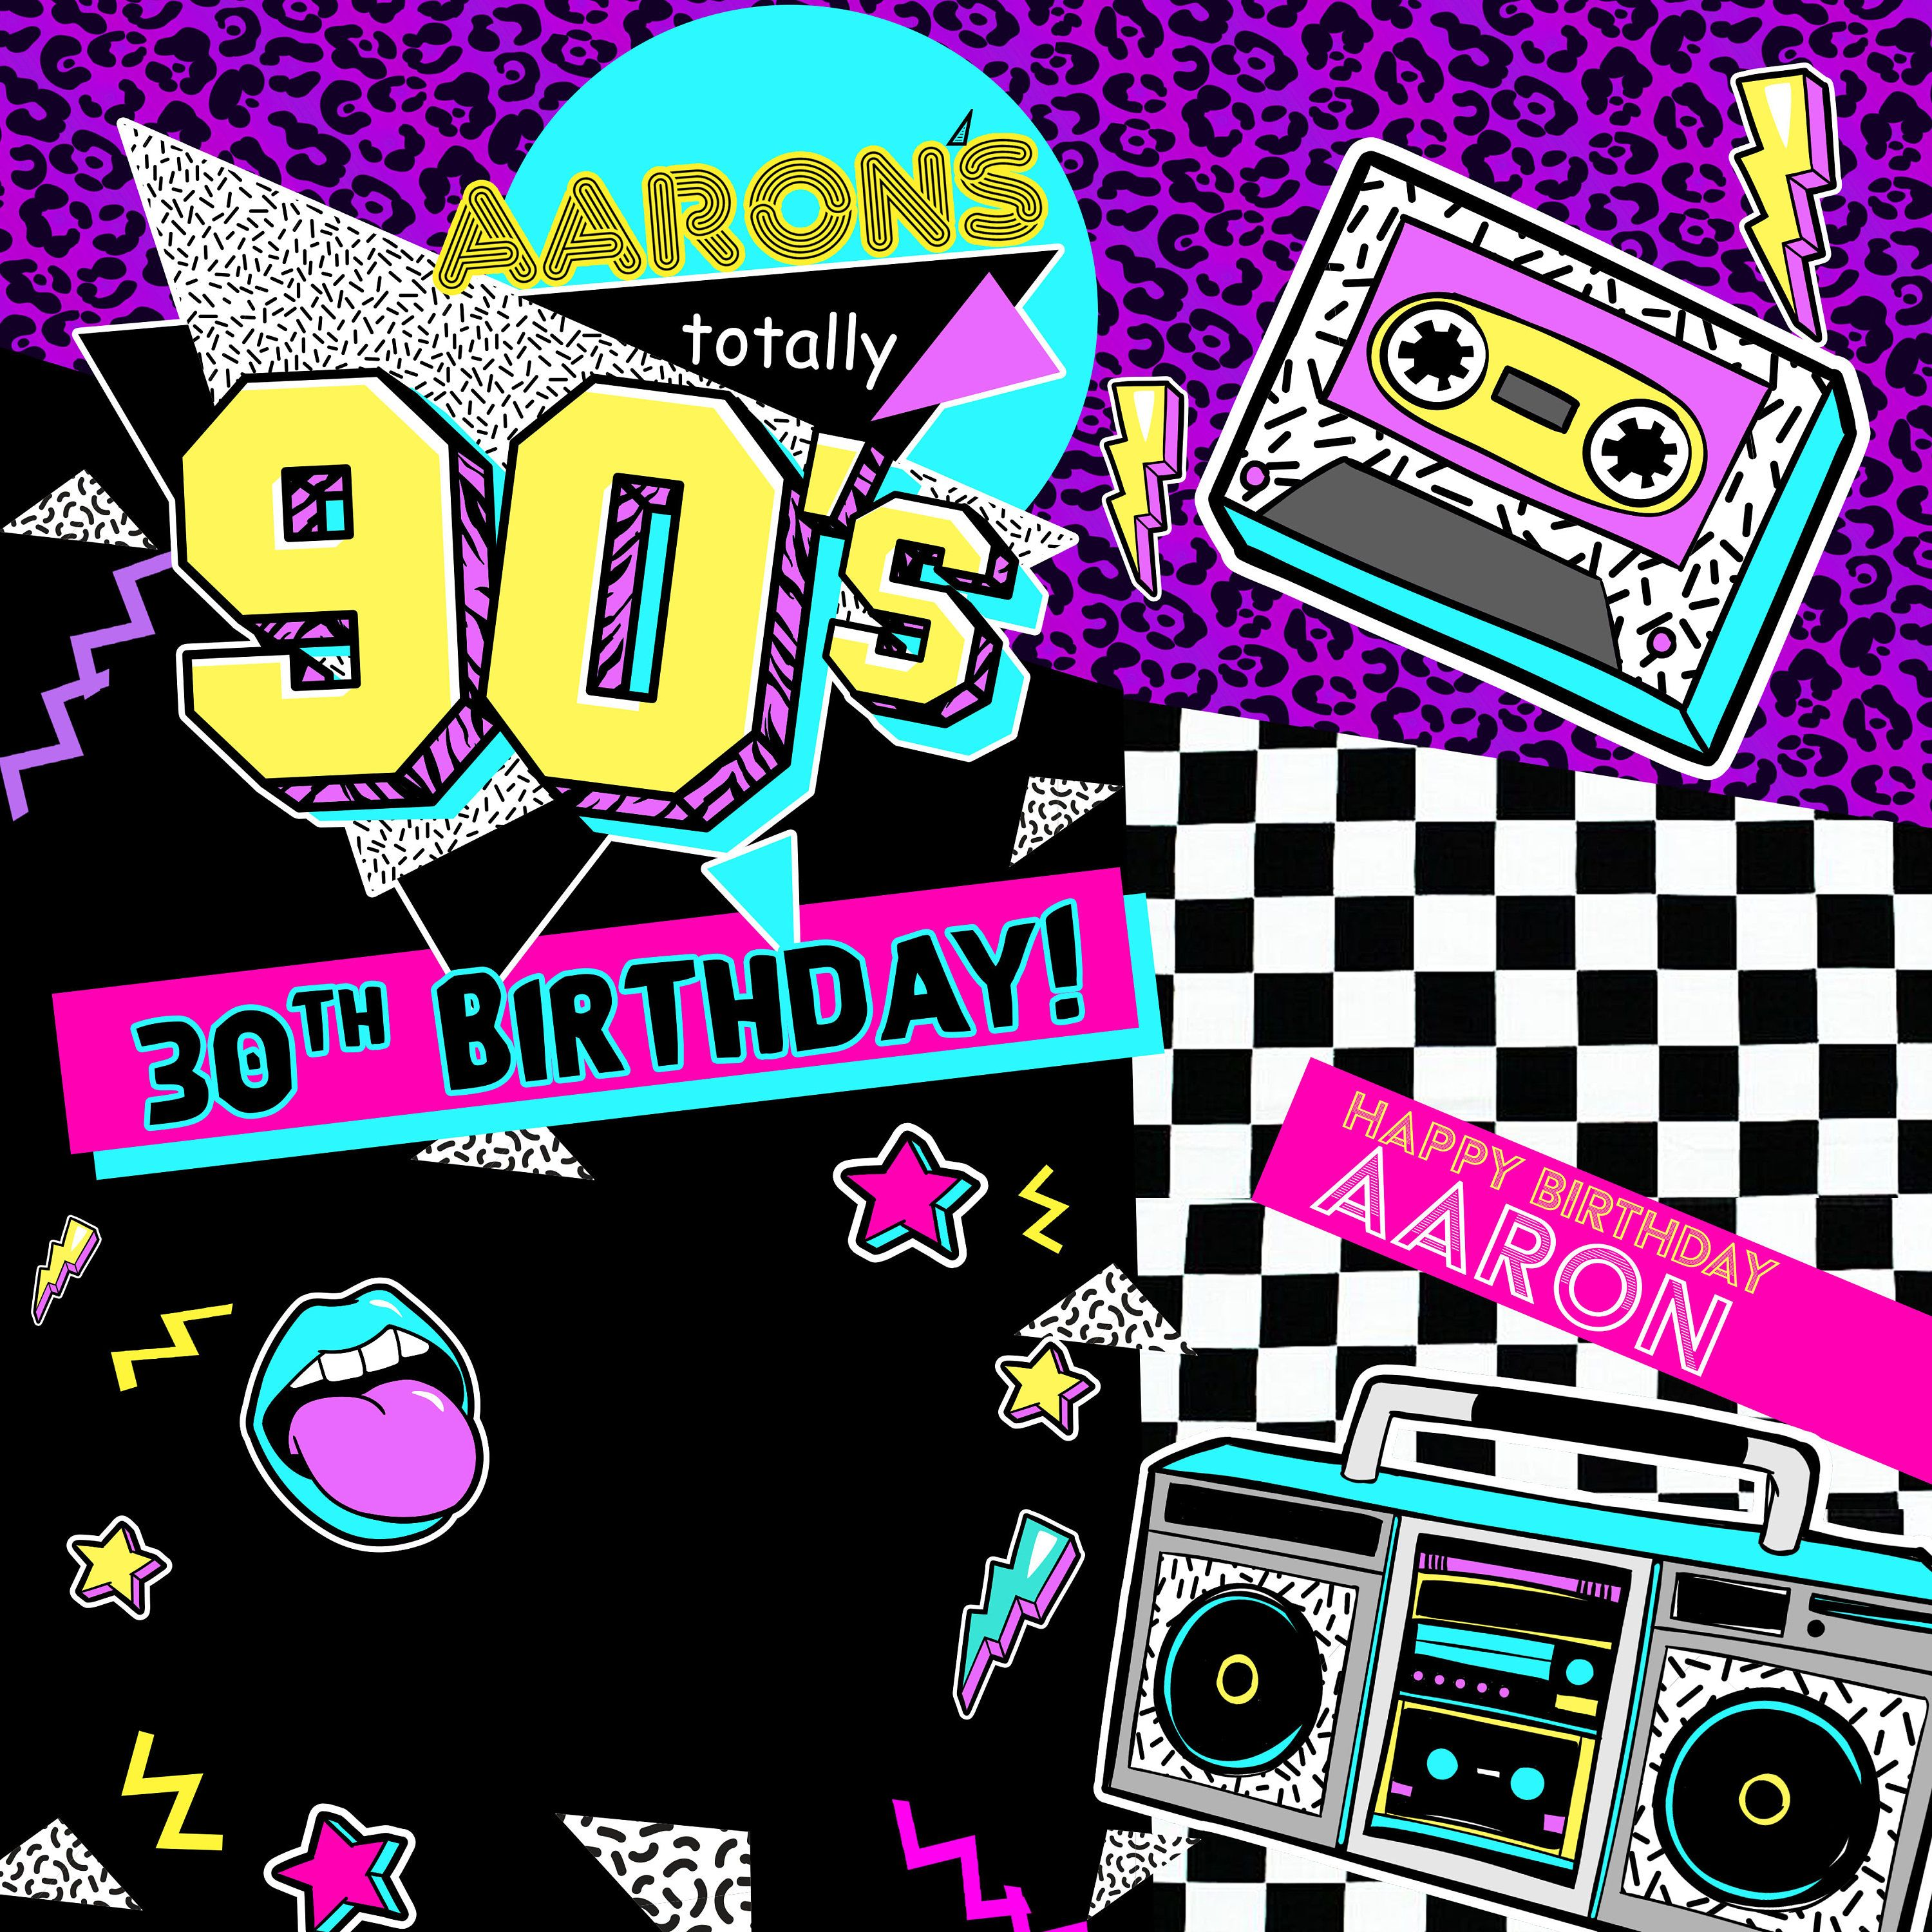 Back To The 90 S Party Personalized Photo Backdrop 90s Etsy Party Photo Backdrop Photo Backdrop Birthday 90s Theme Party